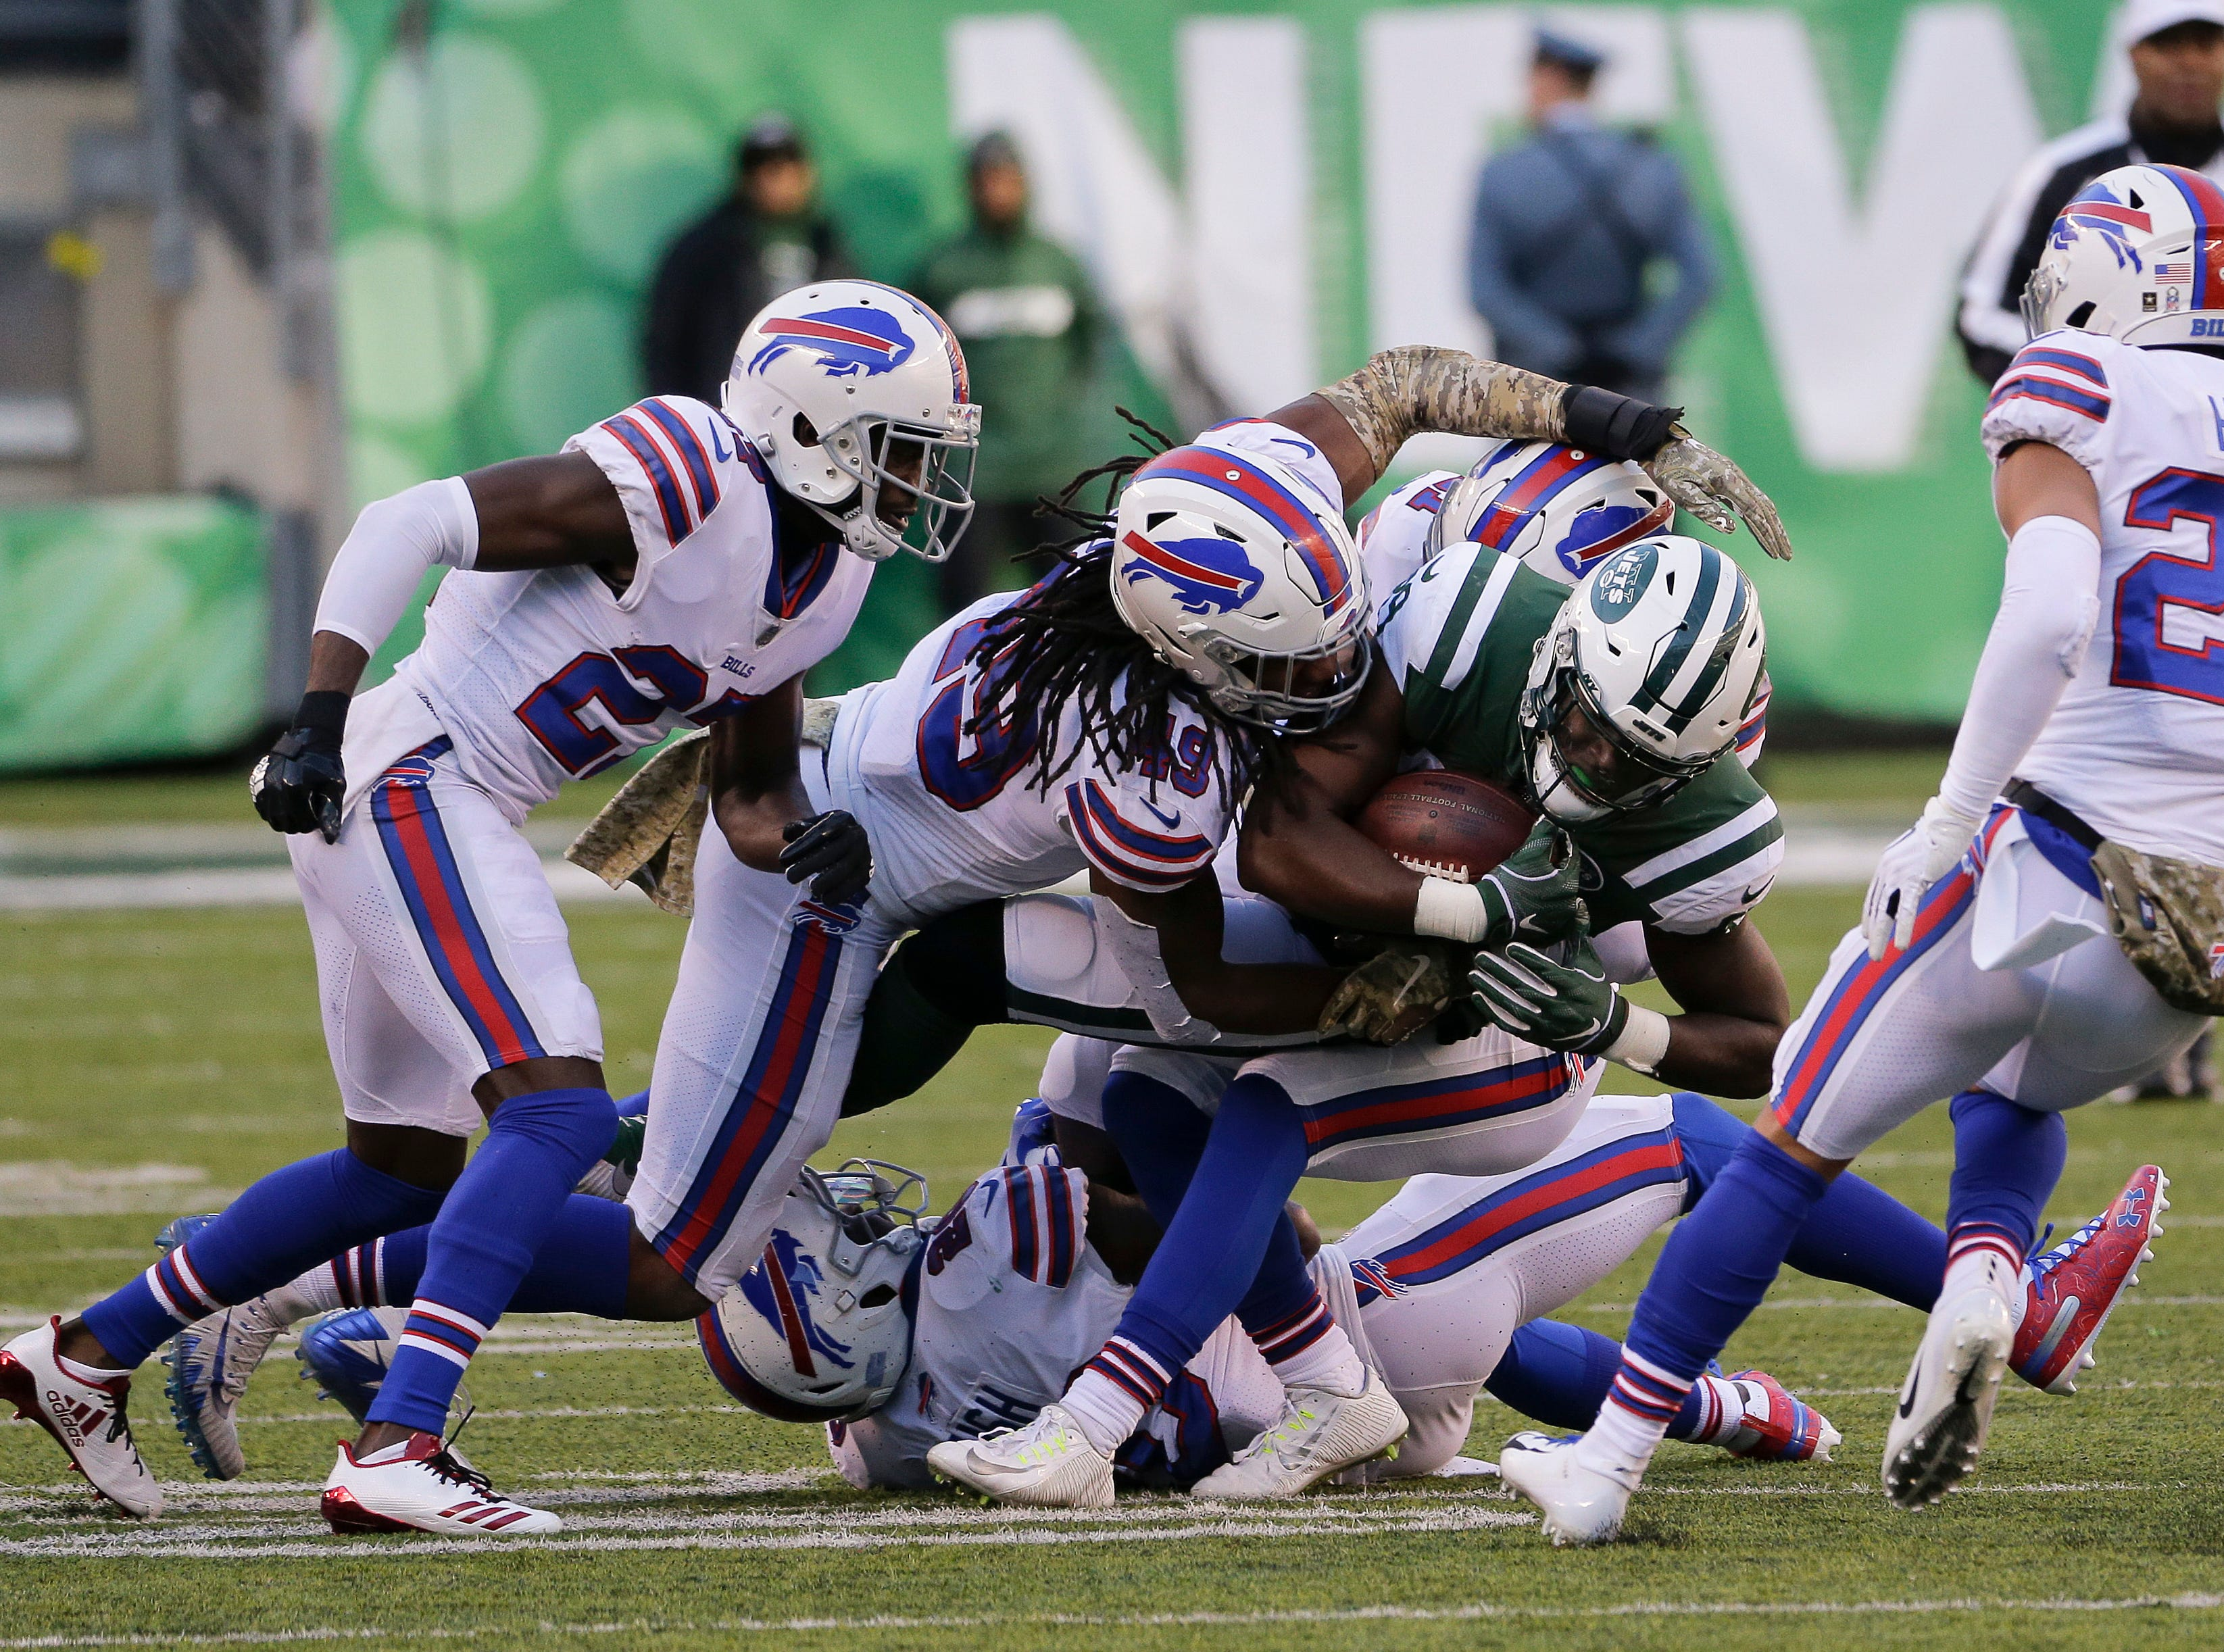 New York Jets tight end Chris Herndon (89) is tackled by the Buffalo Bills during the second quarter of an NFL football game, Sunday, Nov. 11, 2018, in East Rutherford, N.J. (AP Photo/Seth Wenig)